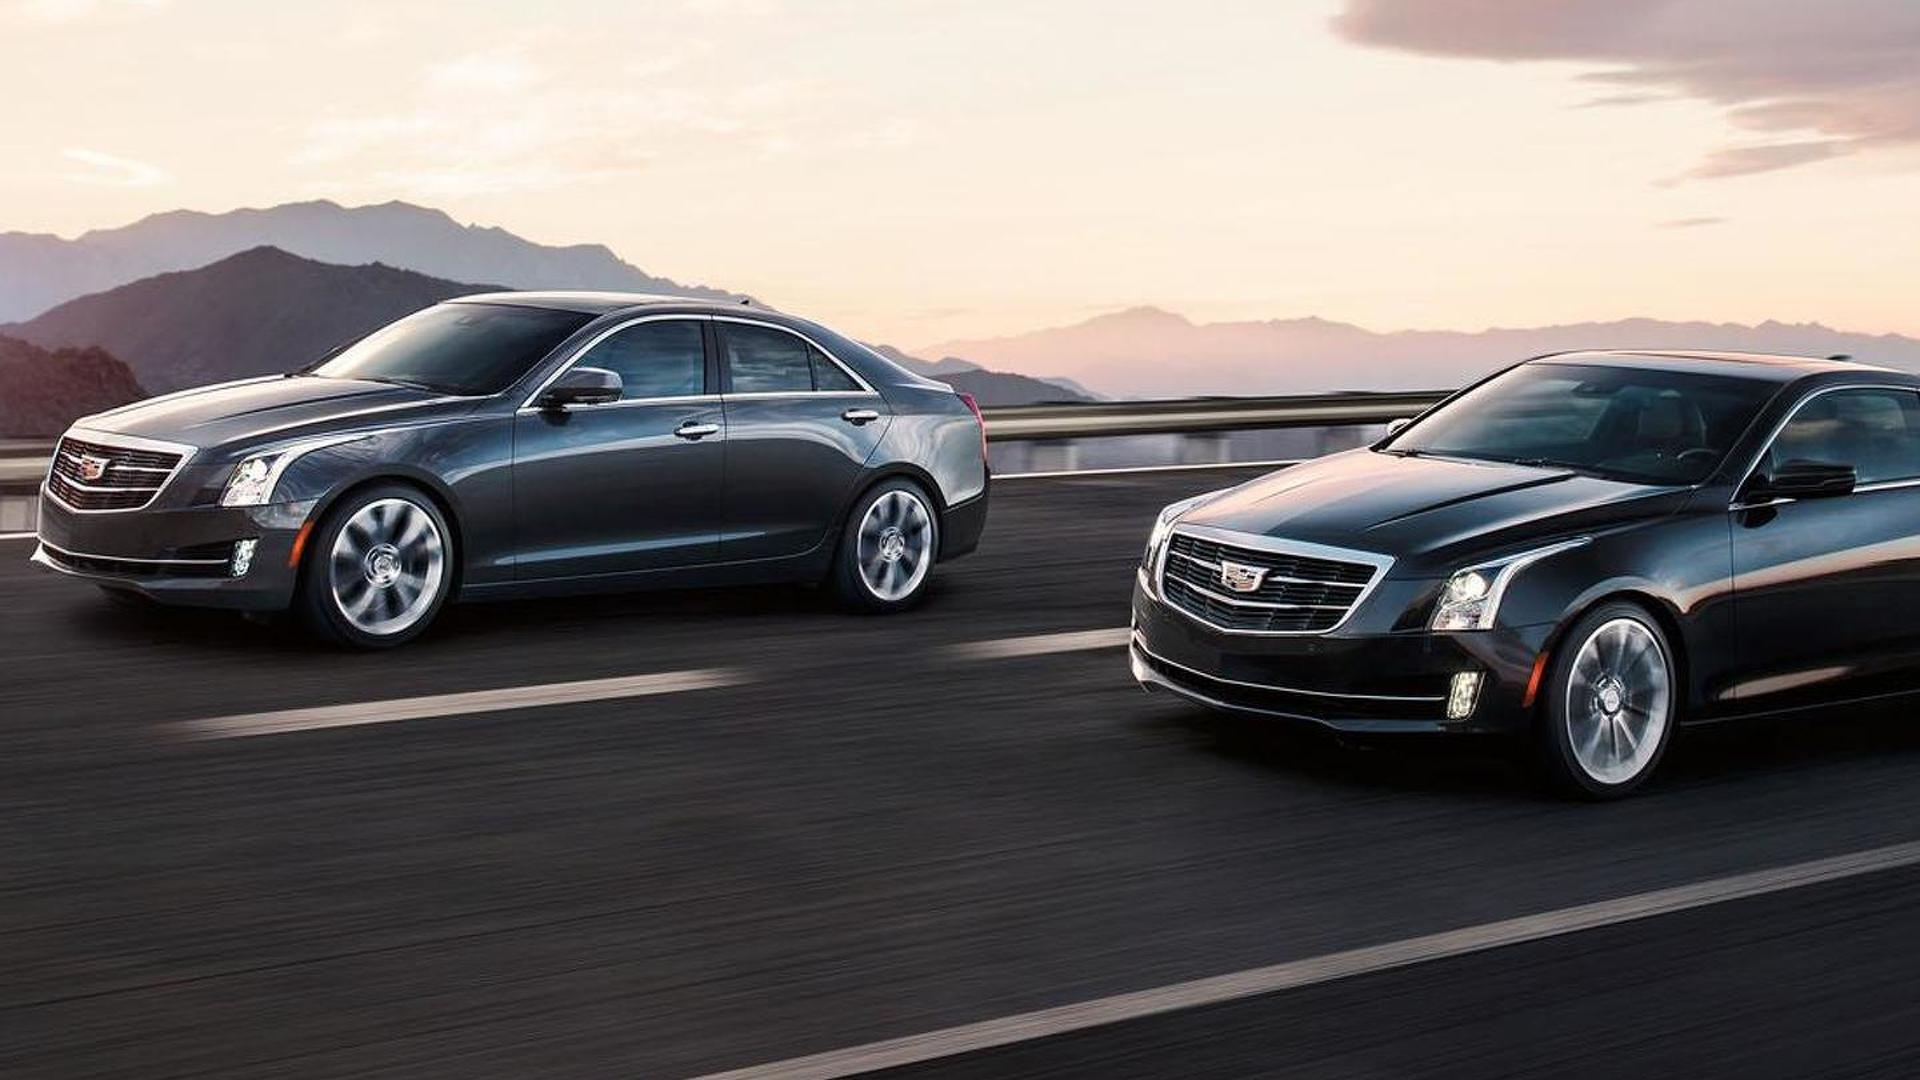 2015 Cadillac ATS sedan officially unveiled with the wreathless crest